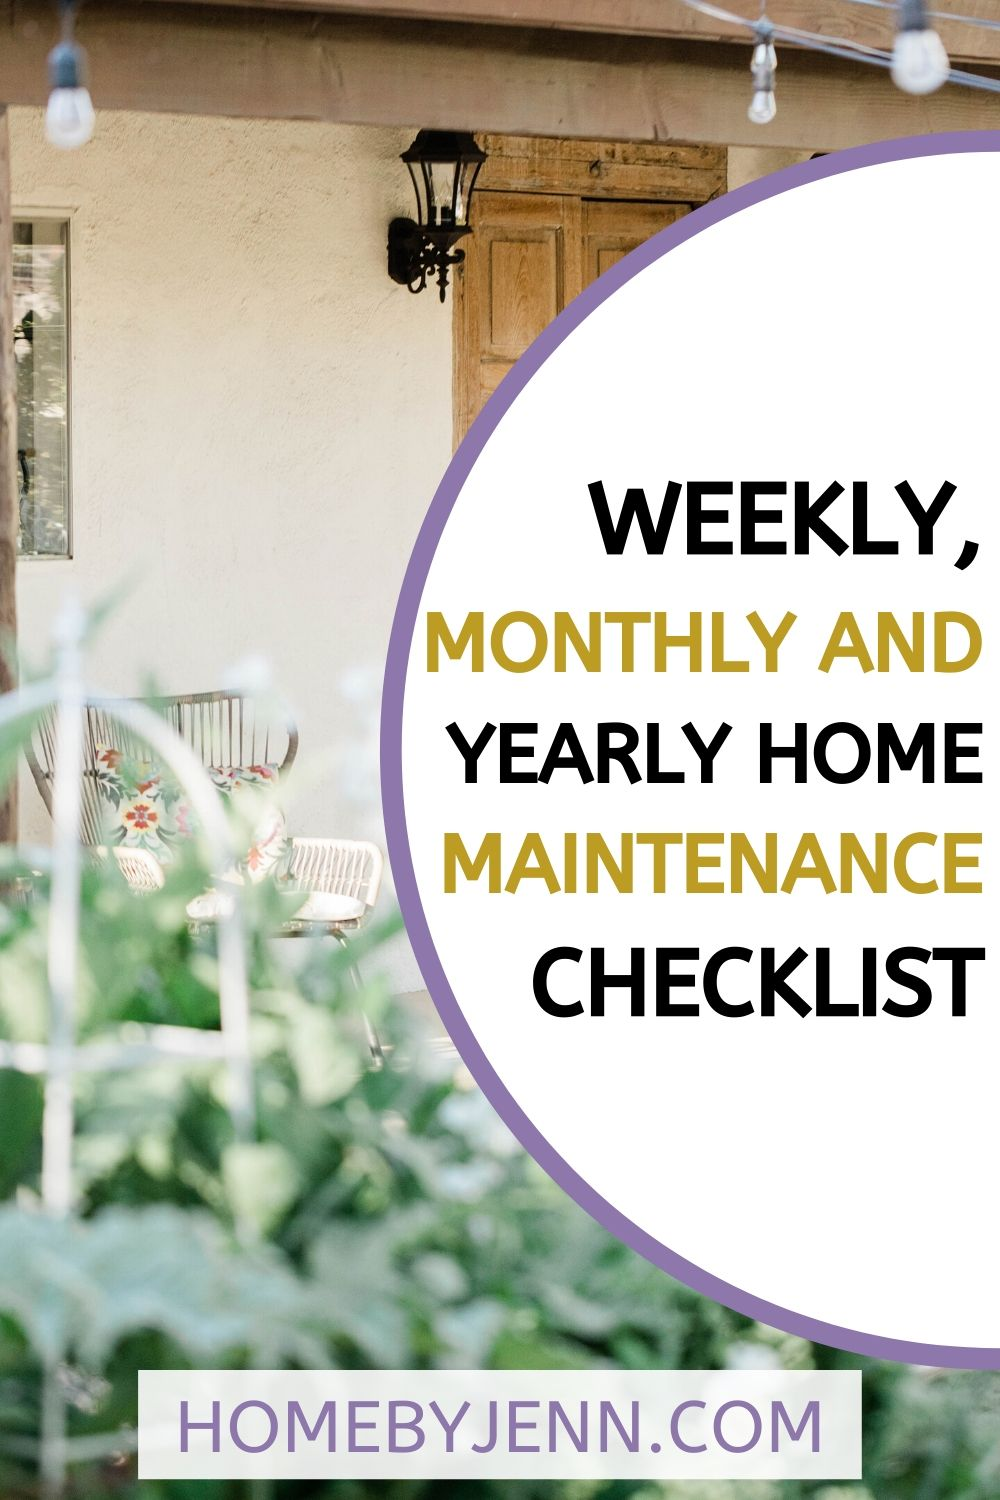 Weekly  Monthly And Yearly Home Maintenance Checklist